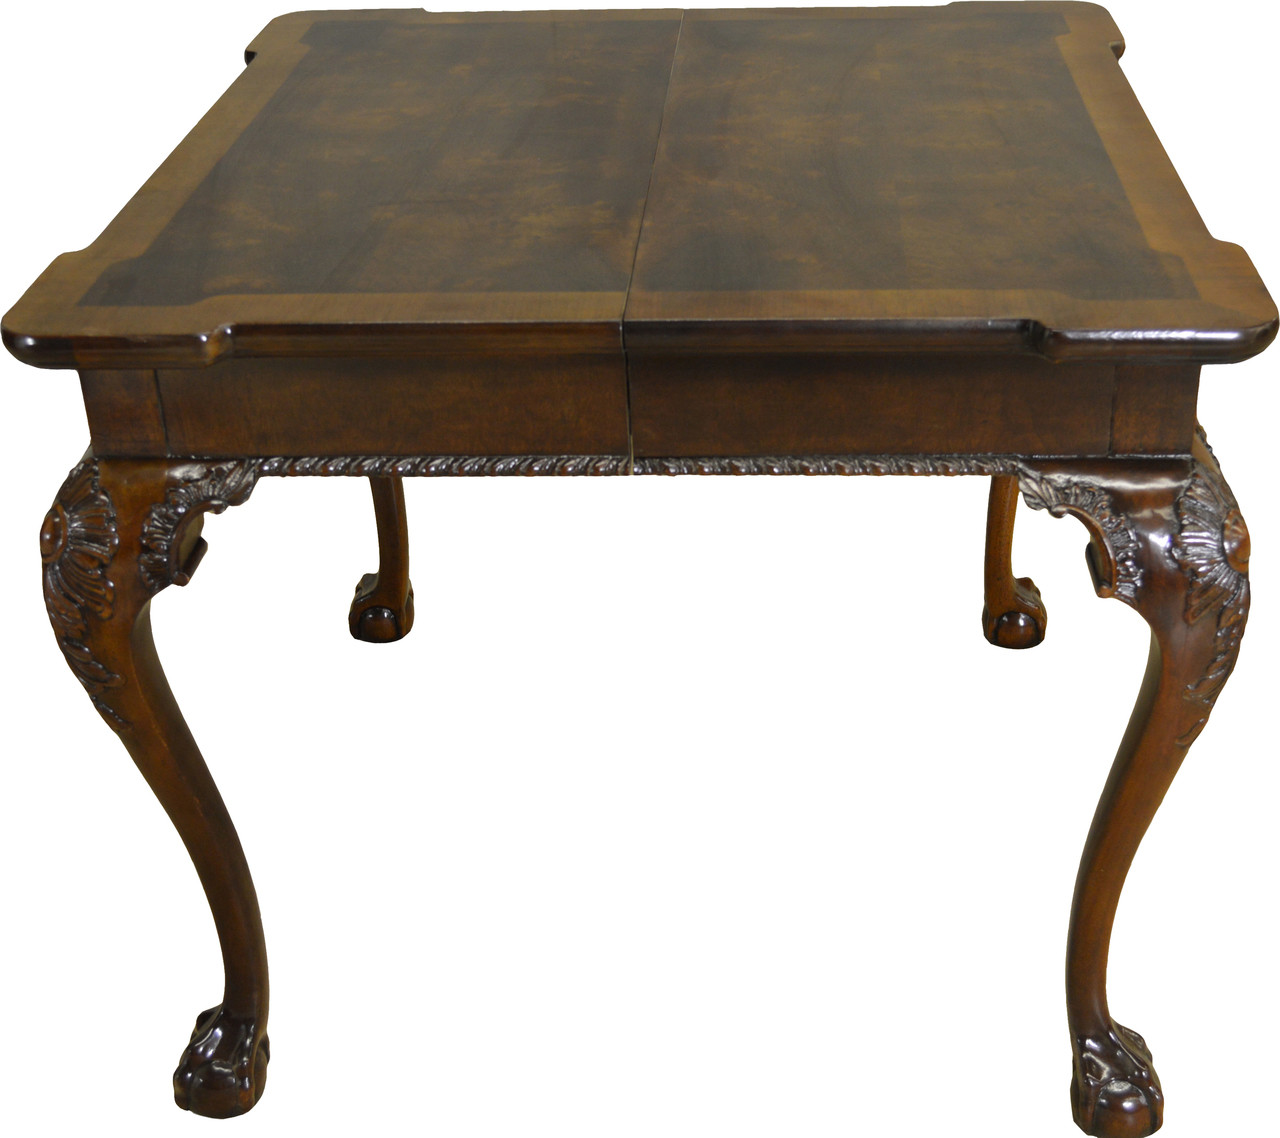 Sold Chippendale Banded Ball And Claw Small Dining Table By Henredon Maine Antique Furniture